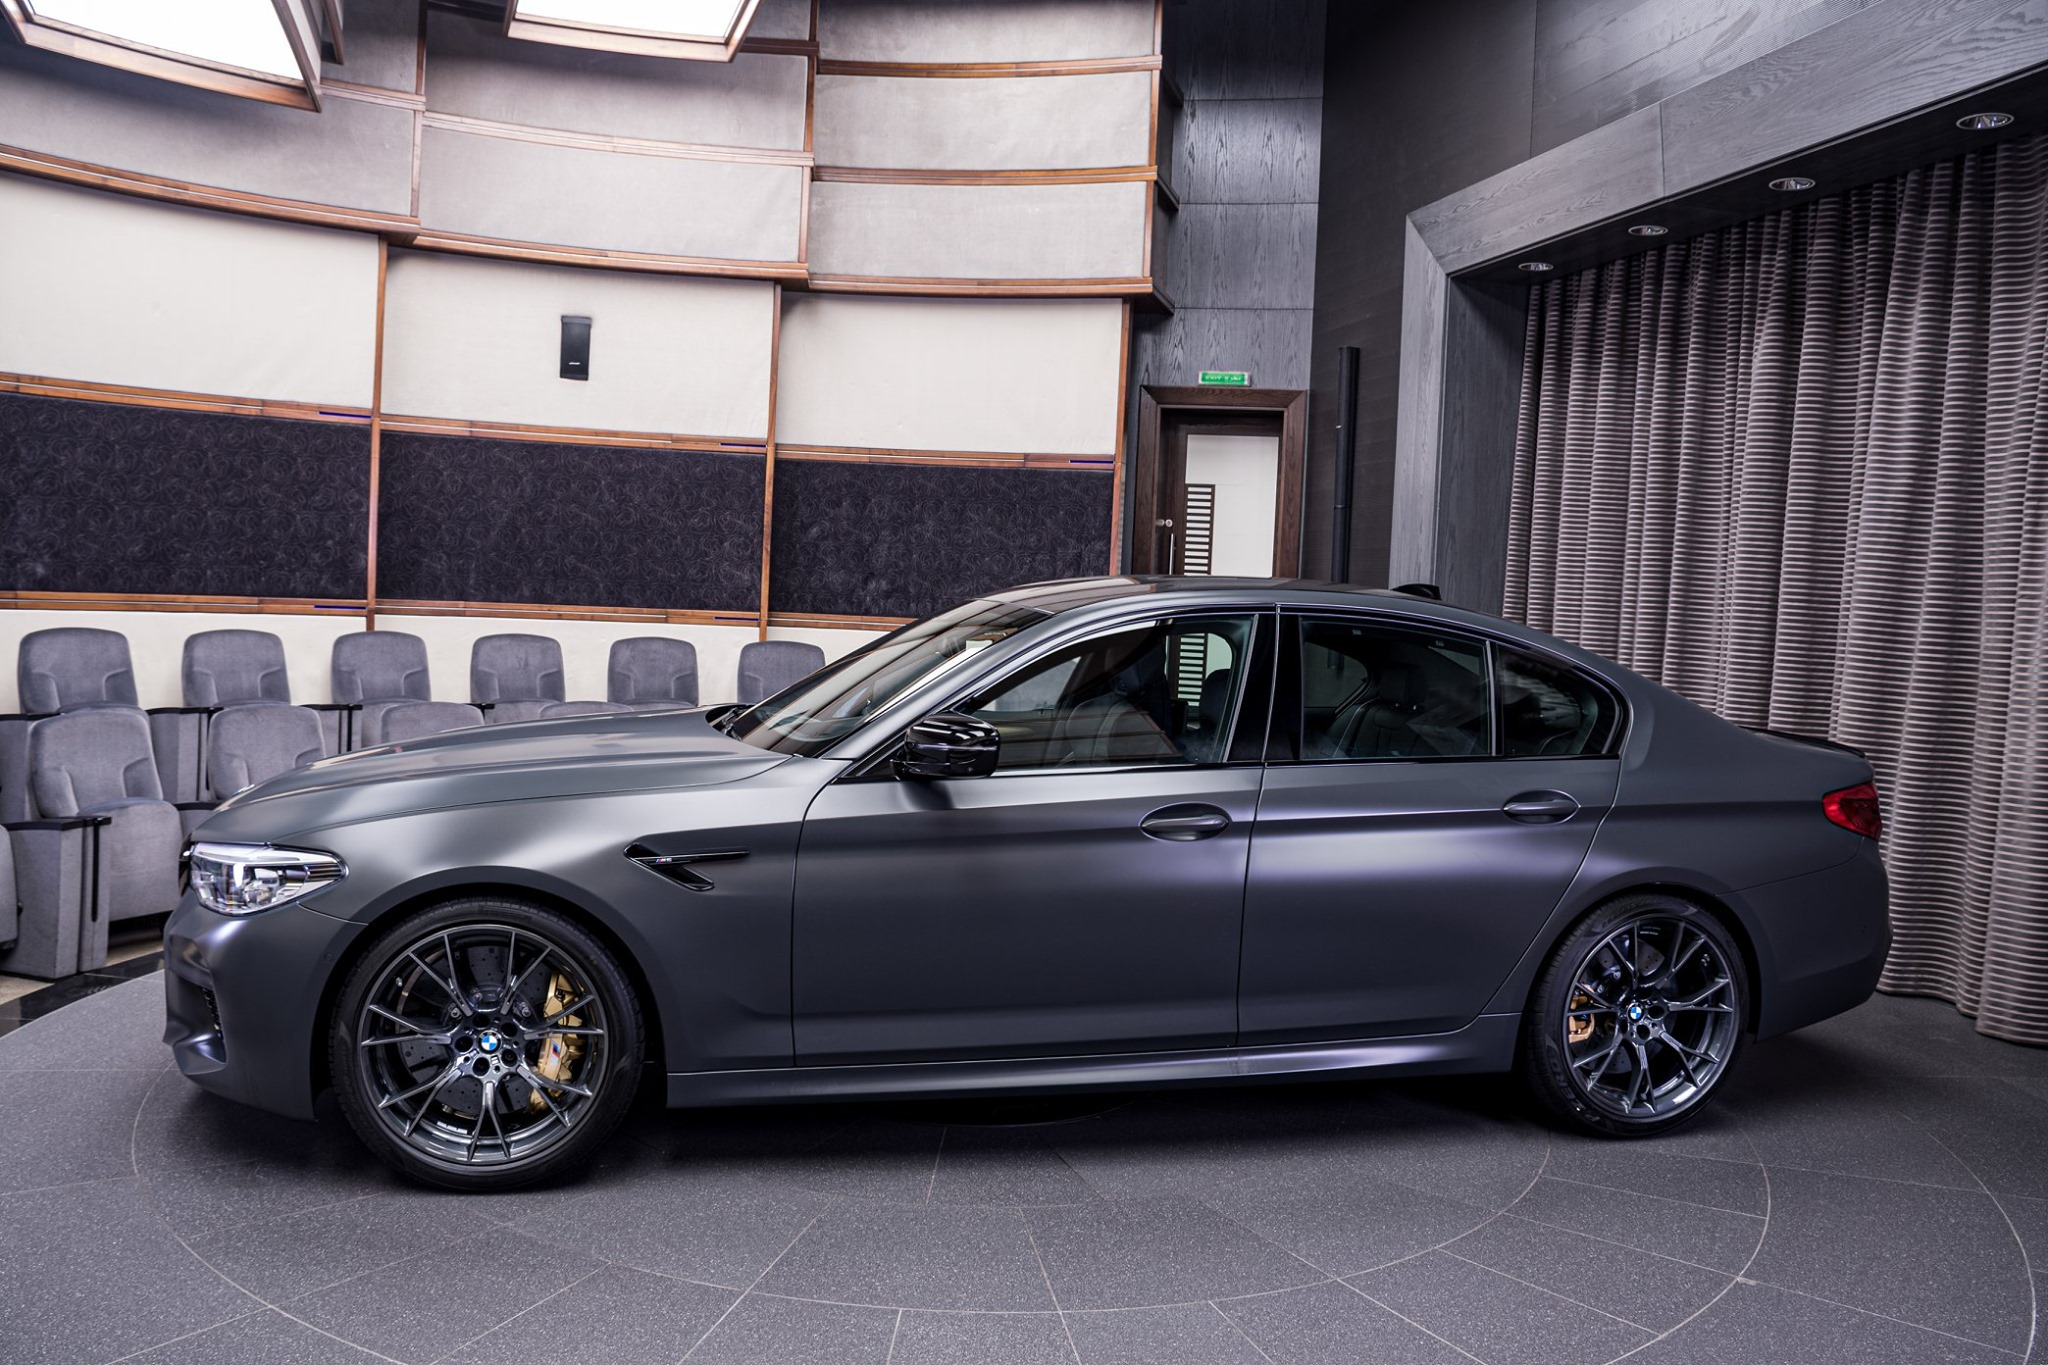 2020 Bmw M5 Edition 35 Years Jahre In The Flesh Carscoops